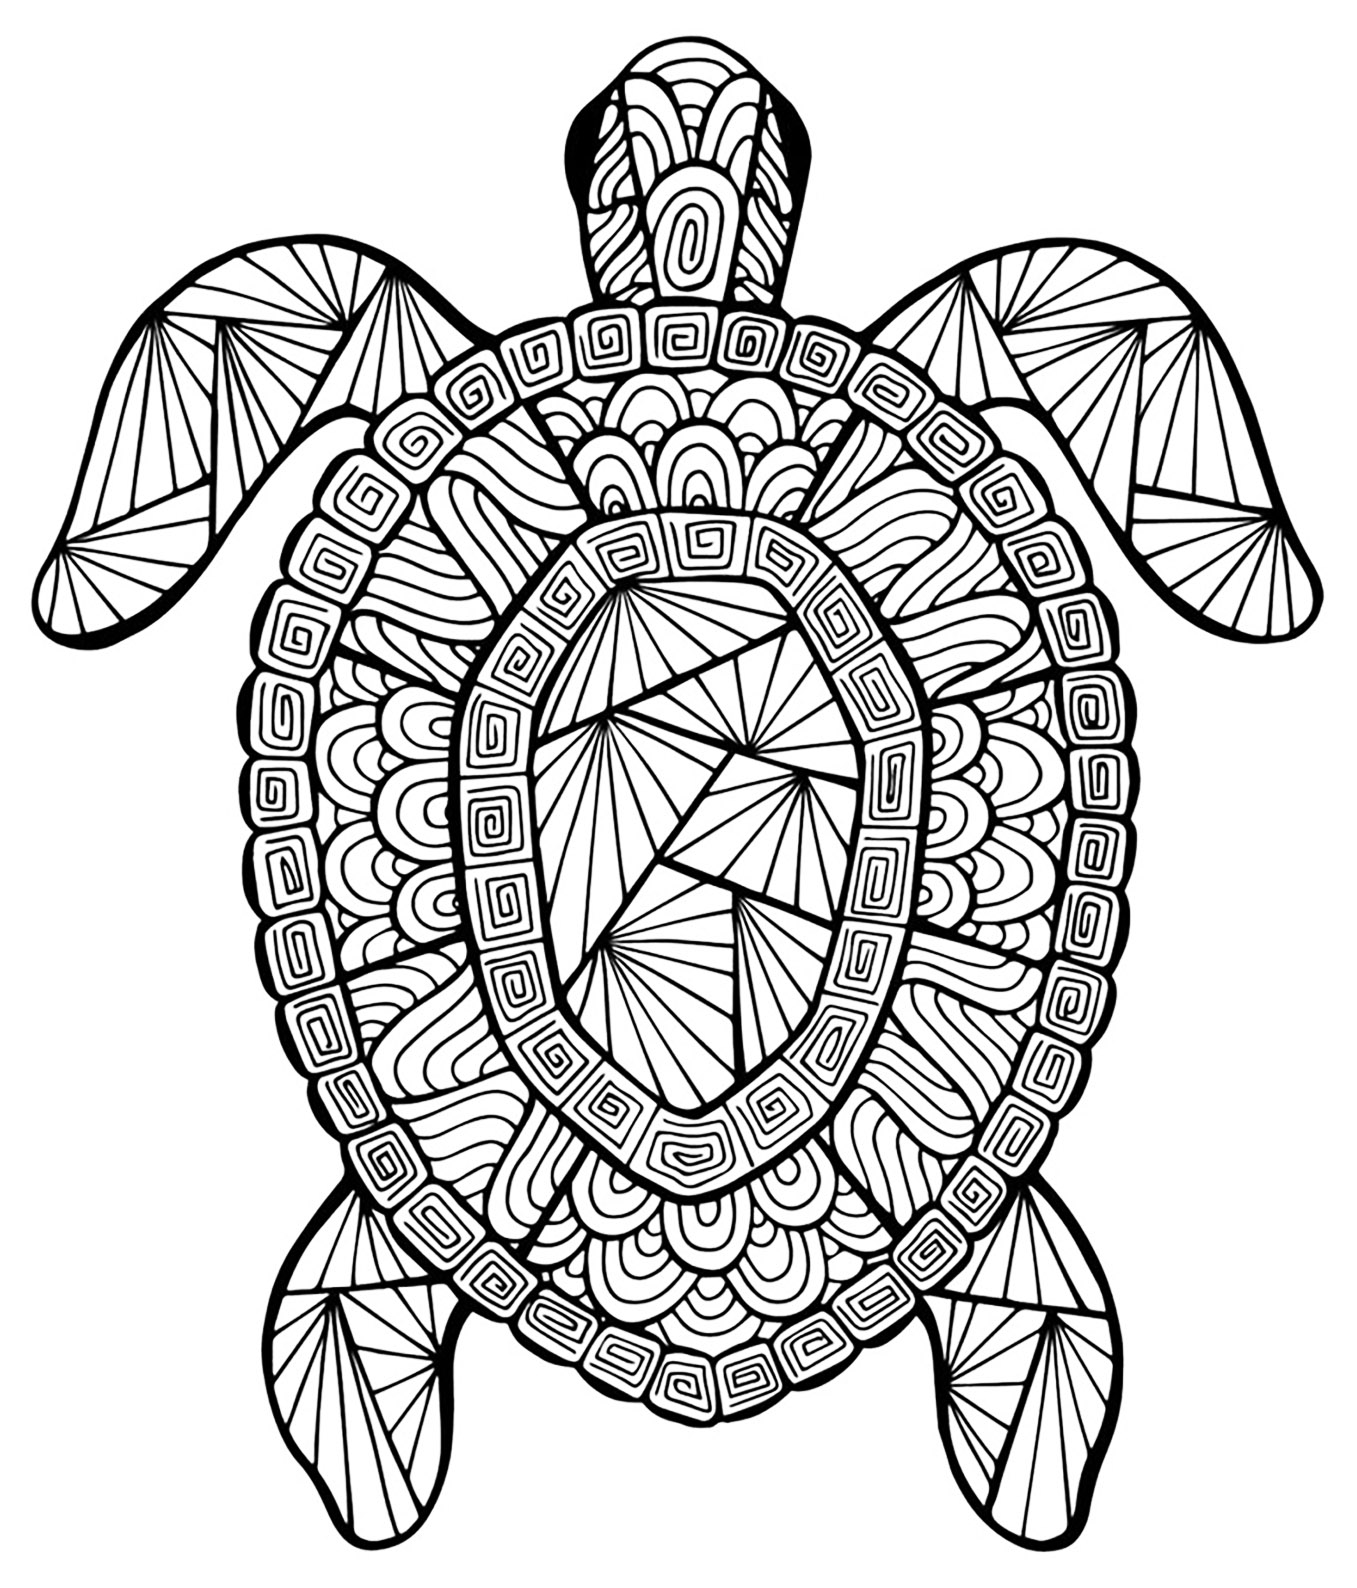 coloring pages 1 300 printables - Coloring Pages